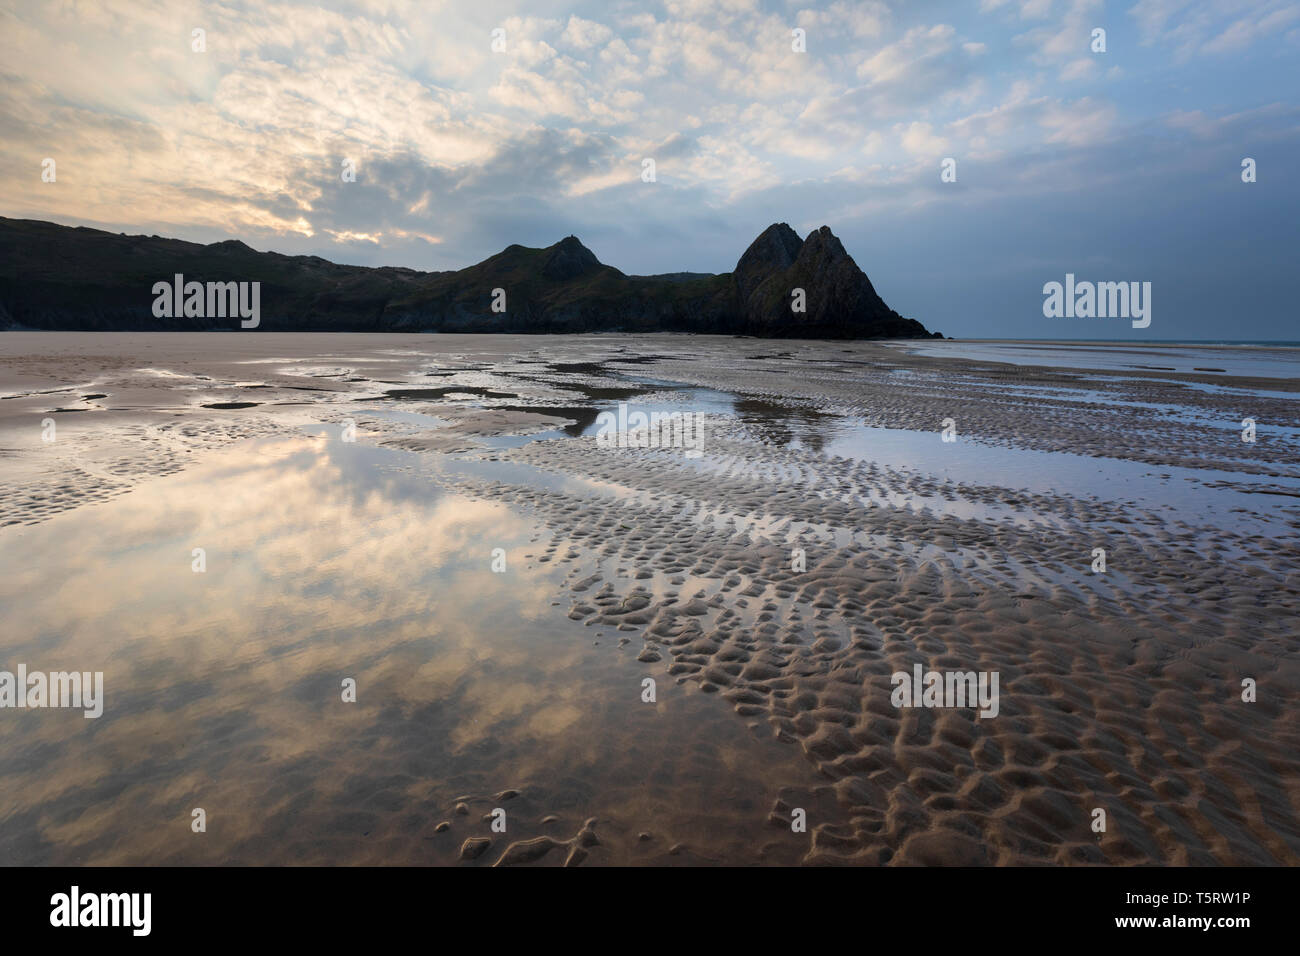 Three Cliffs Bay at sunrise with low tide, Gower Peninsula, Swansea, West Glamorgan, Wales, United Kingdom, Europe - Stock Image